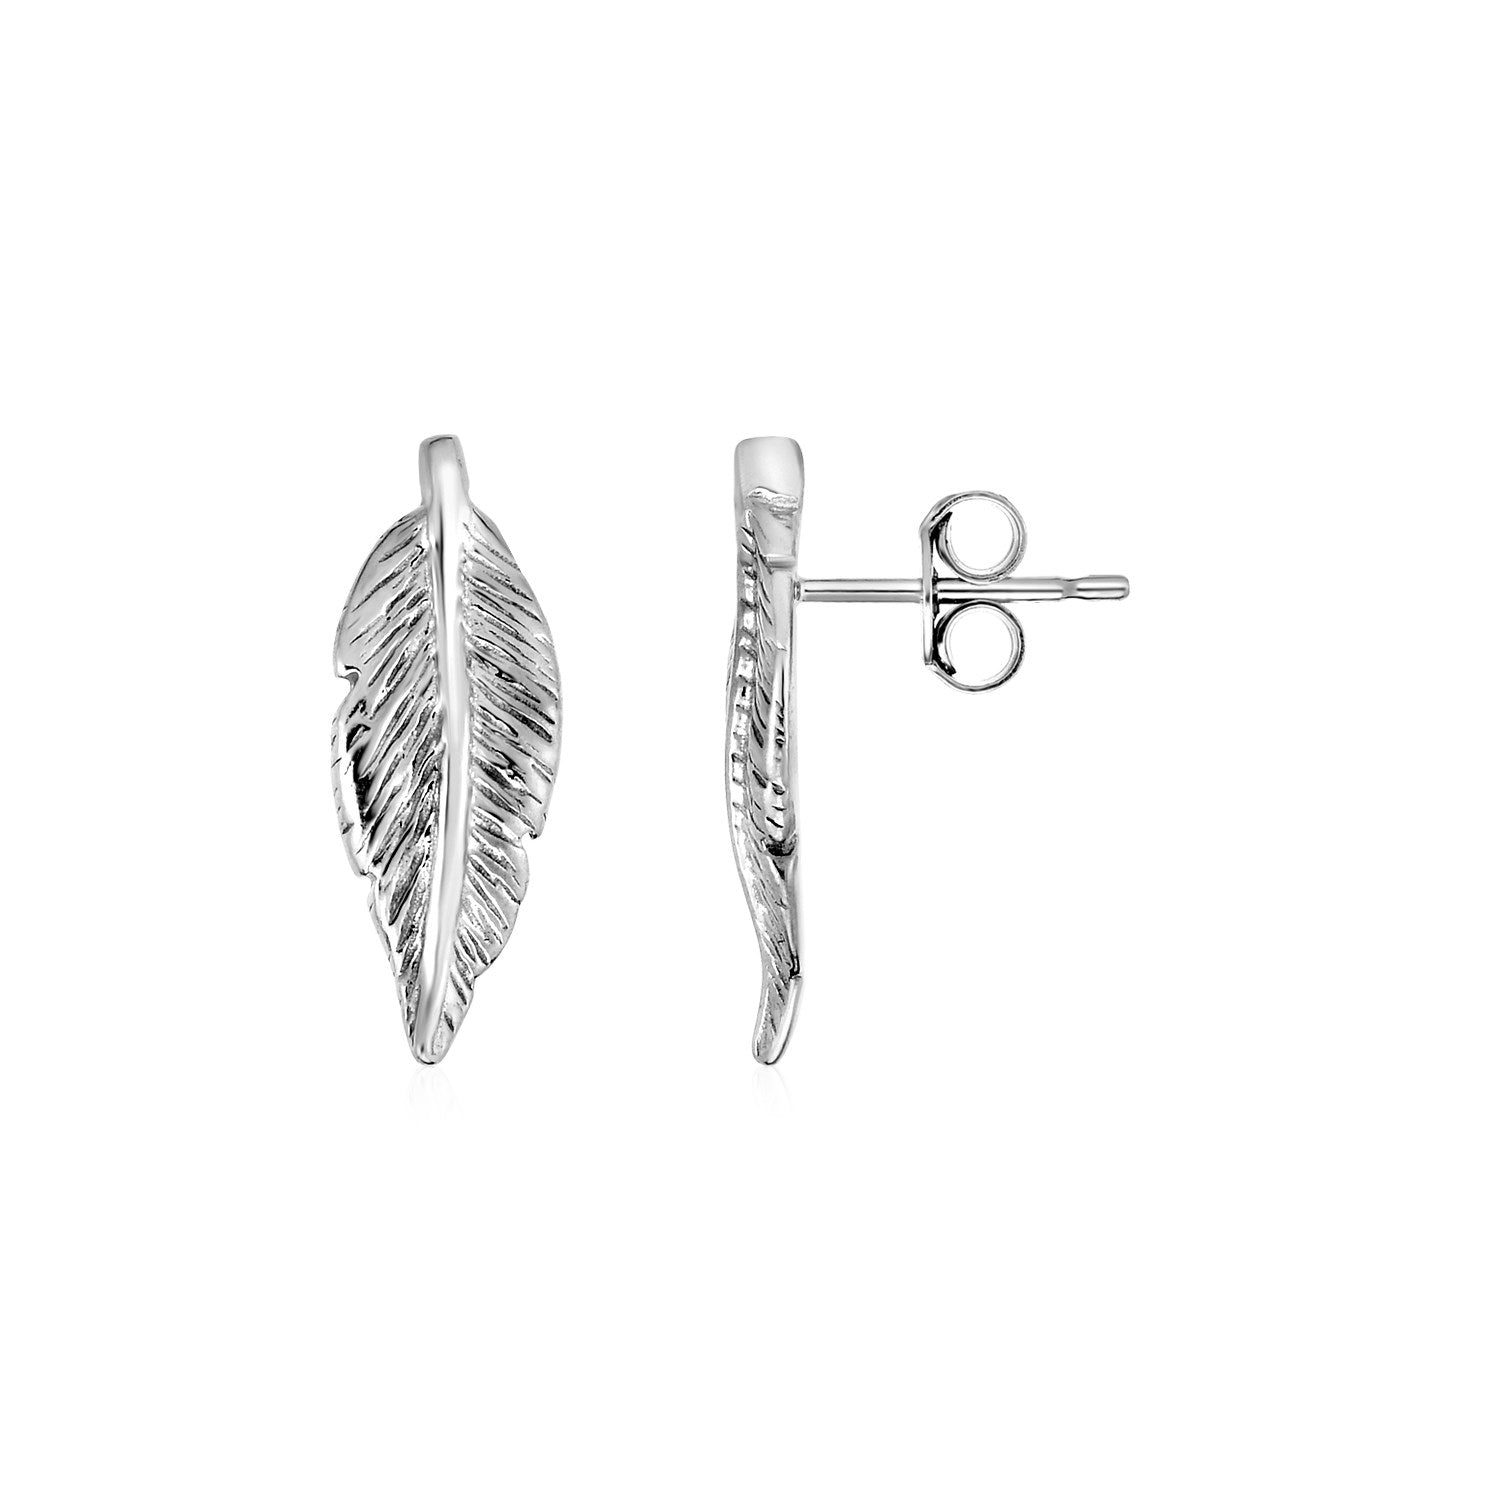 Unique Modern Paris Style Textured Leaf Earrings in Sterling Silver